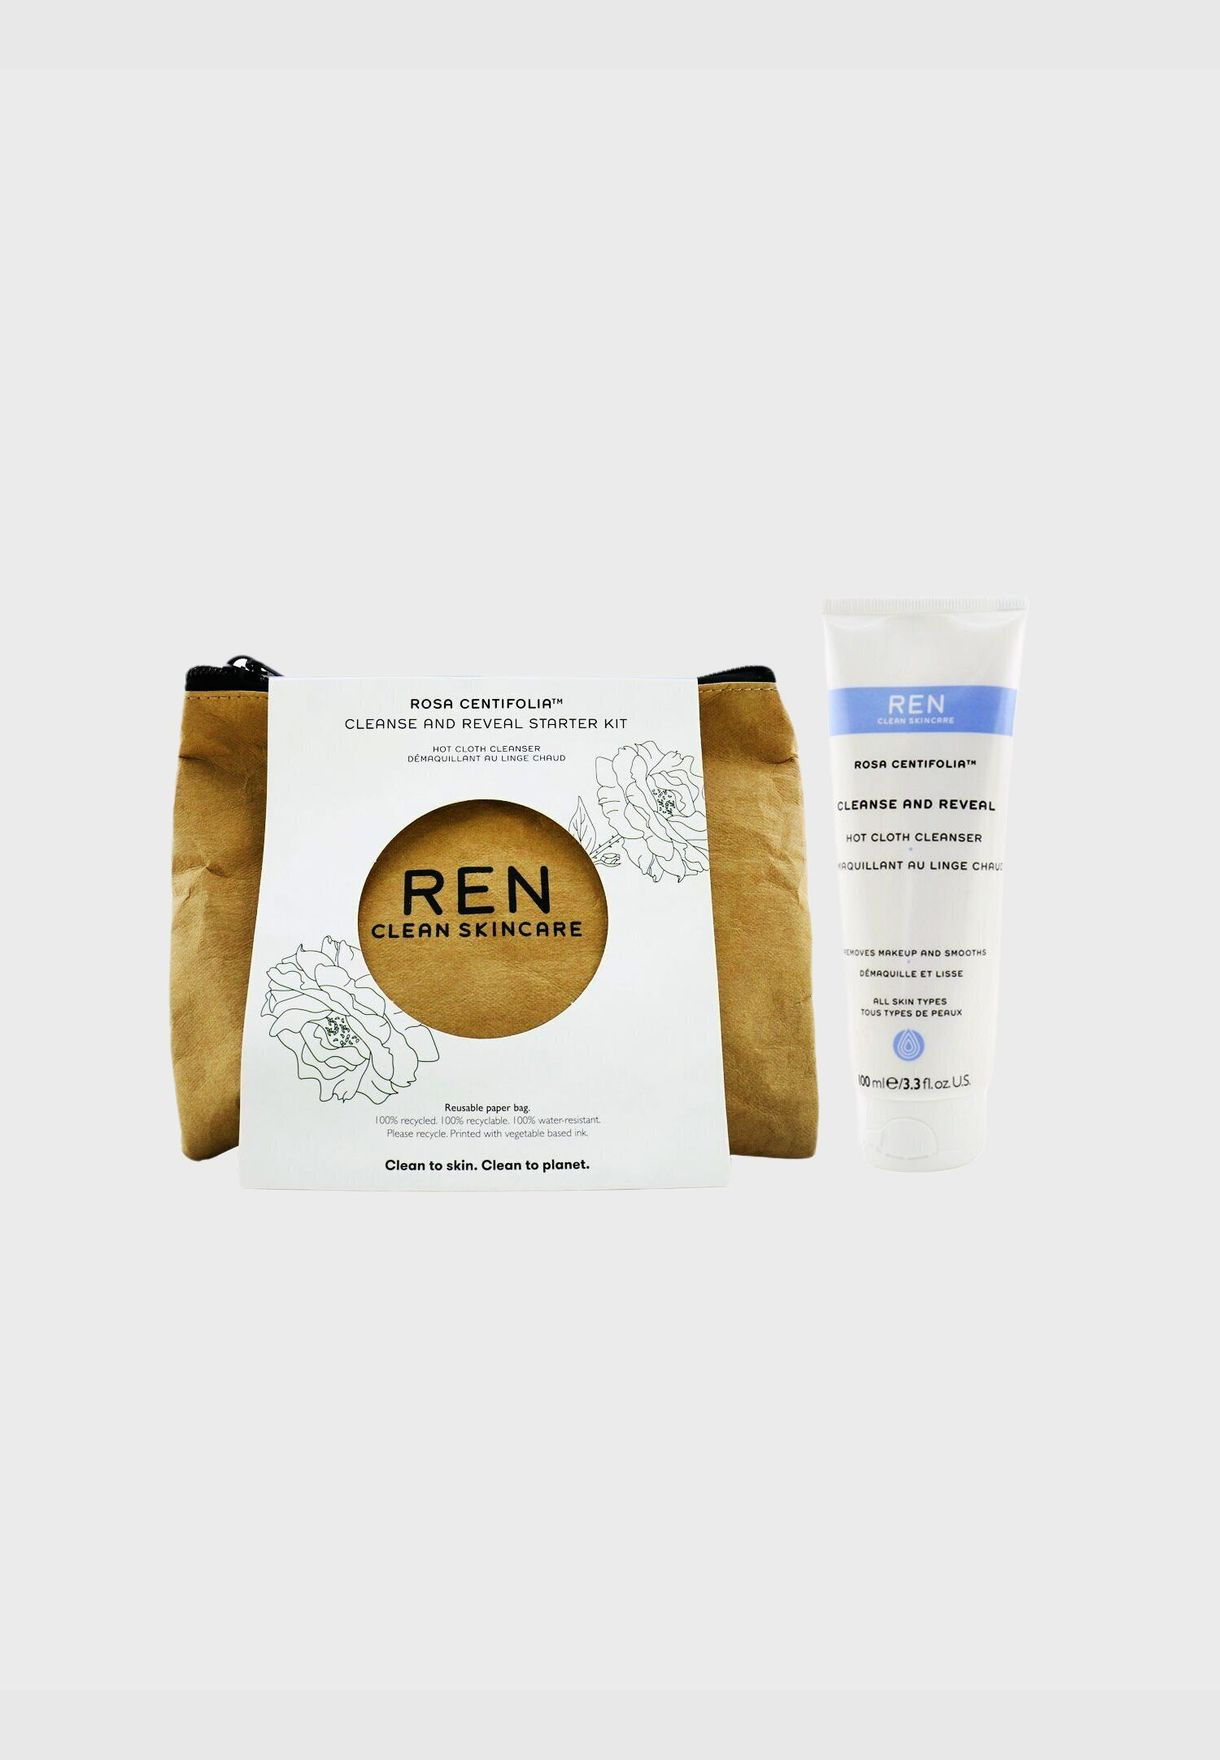 Rosa Centifolia Cleanse & Reveal Starter Kit: Hot Cloth Cleanser 100ml + 100% Unbleached Cotton Cloths 2pcs